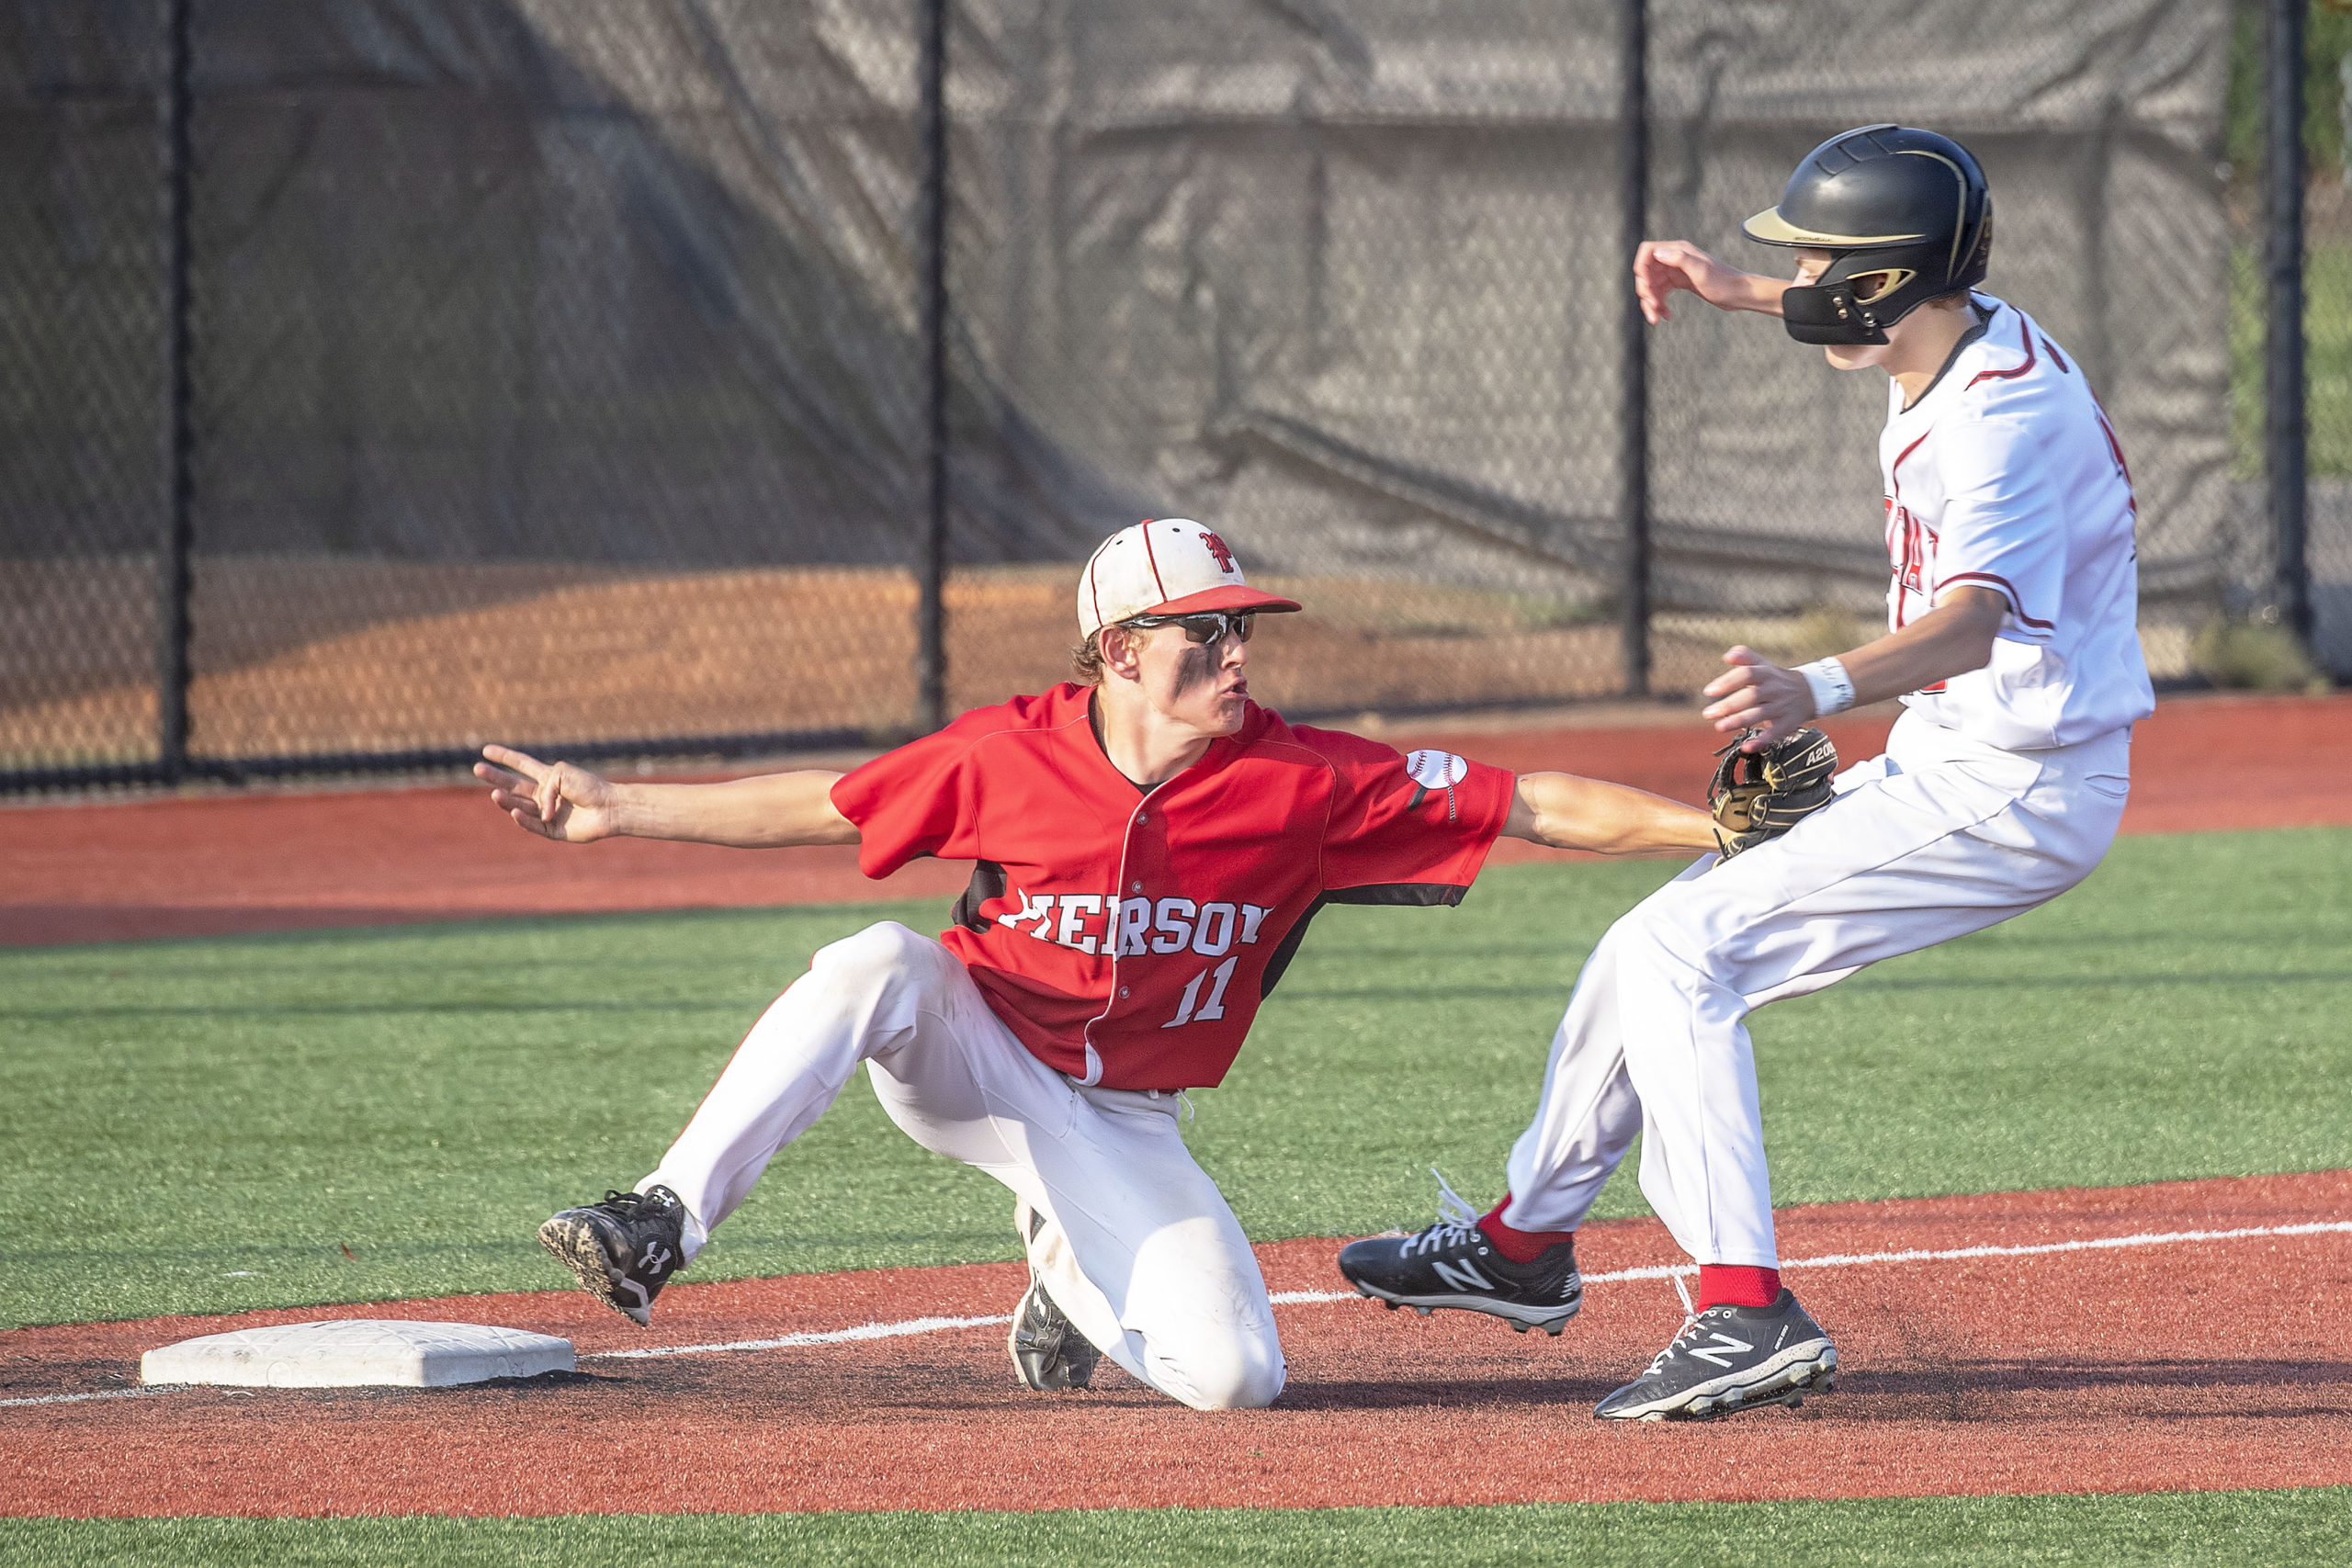 Pierson's Gavin Gilbride tags a runner out at third.